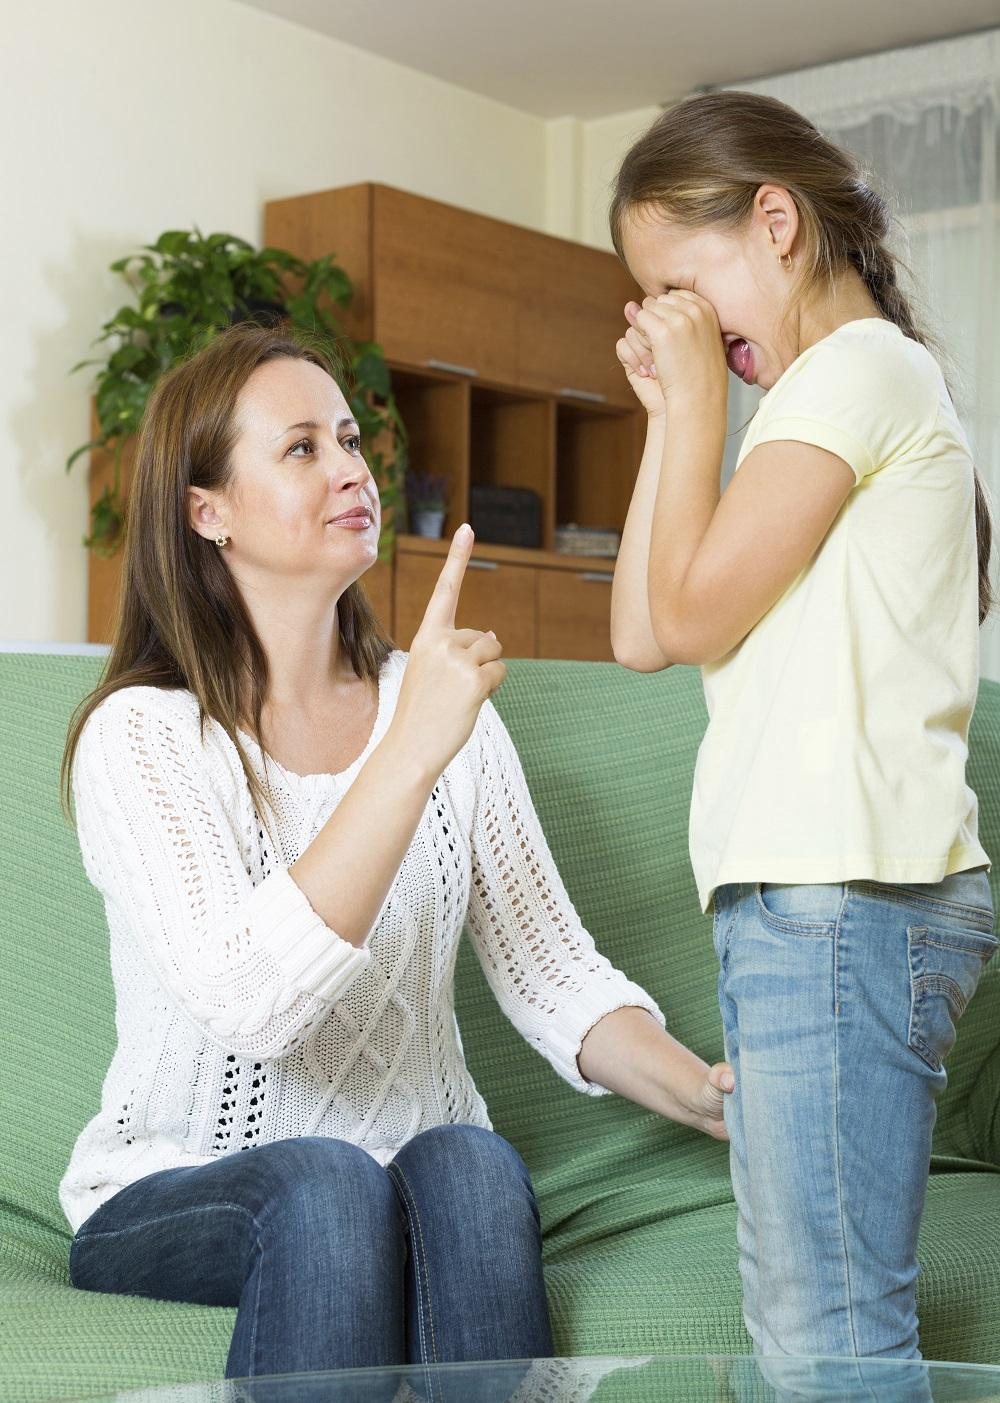 How To Teach Your Child Not To Lie